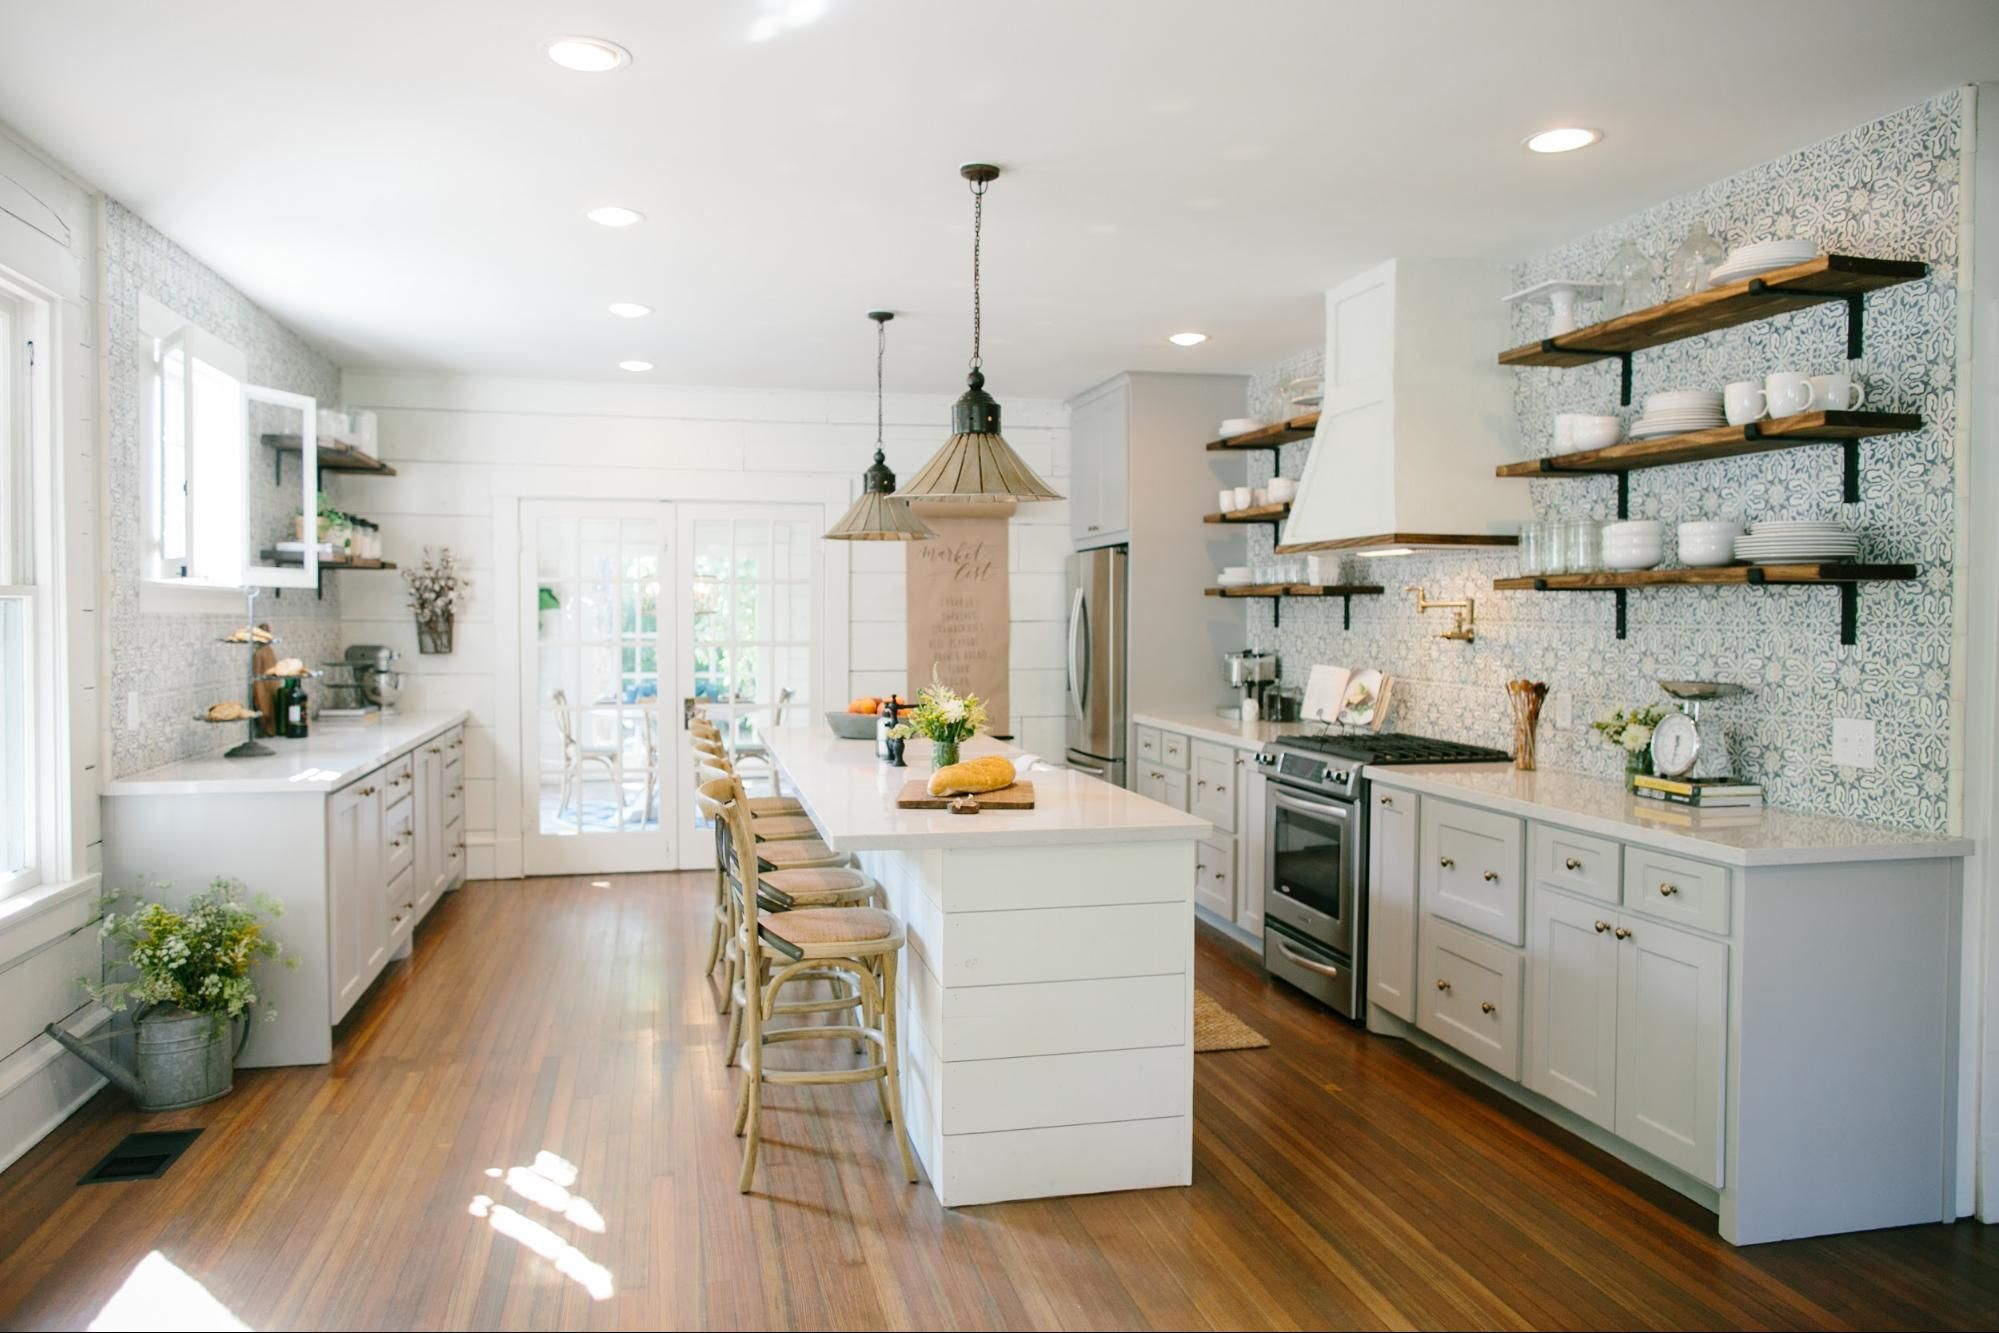 Fixer upper kitchen island pictures - 17 Best Images About Blue And White Gray Kitchens On Pinterest Cabinets Kitchen Wall Colors And Islands Kitchens On Fixer Upper